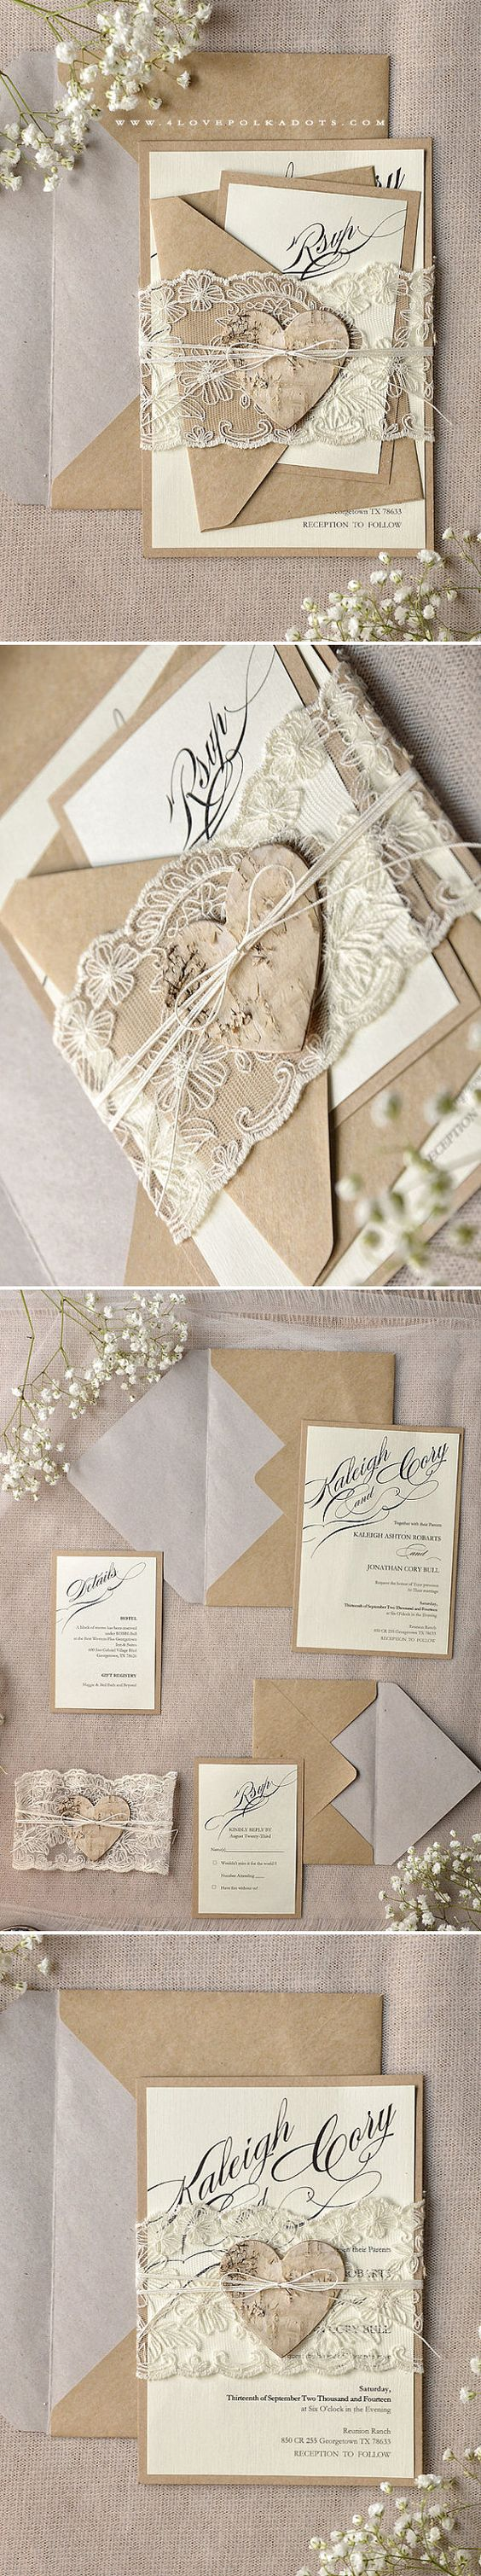 Rustic Romantic Wedding Invitations With Real Lace Amp Birch Bark Heart Tag